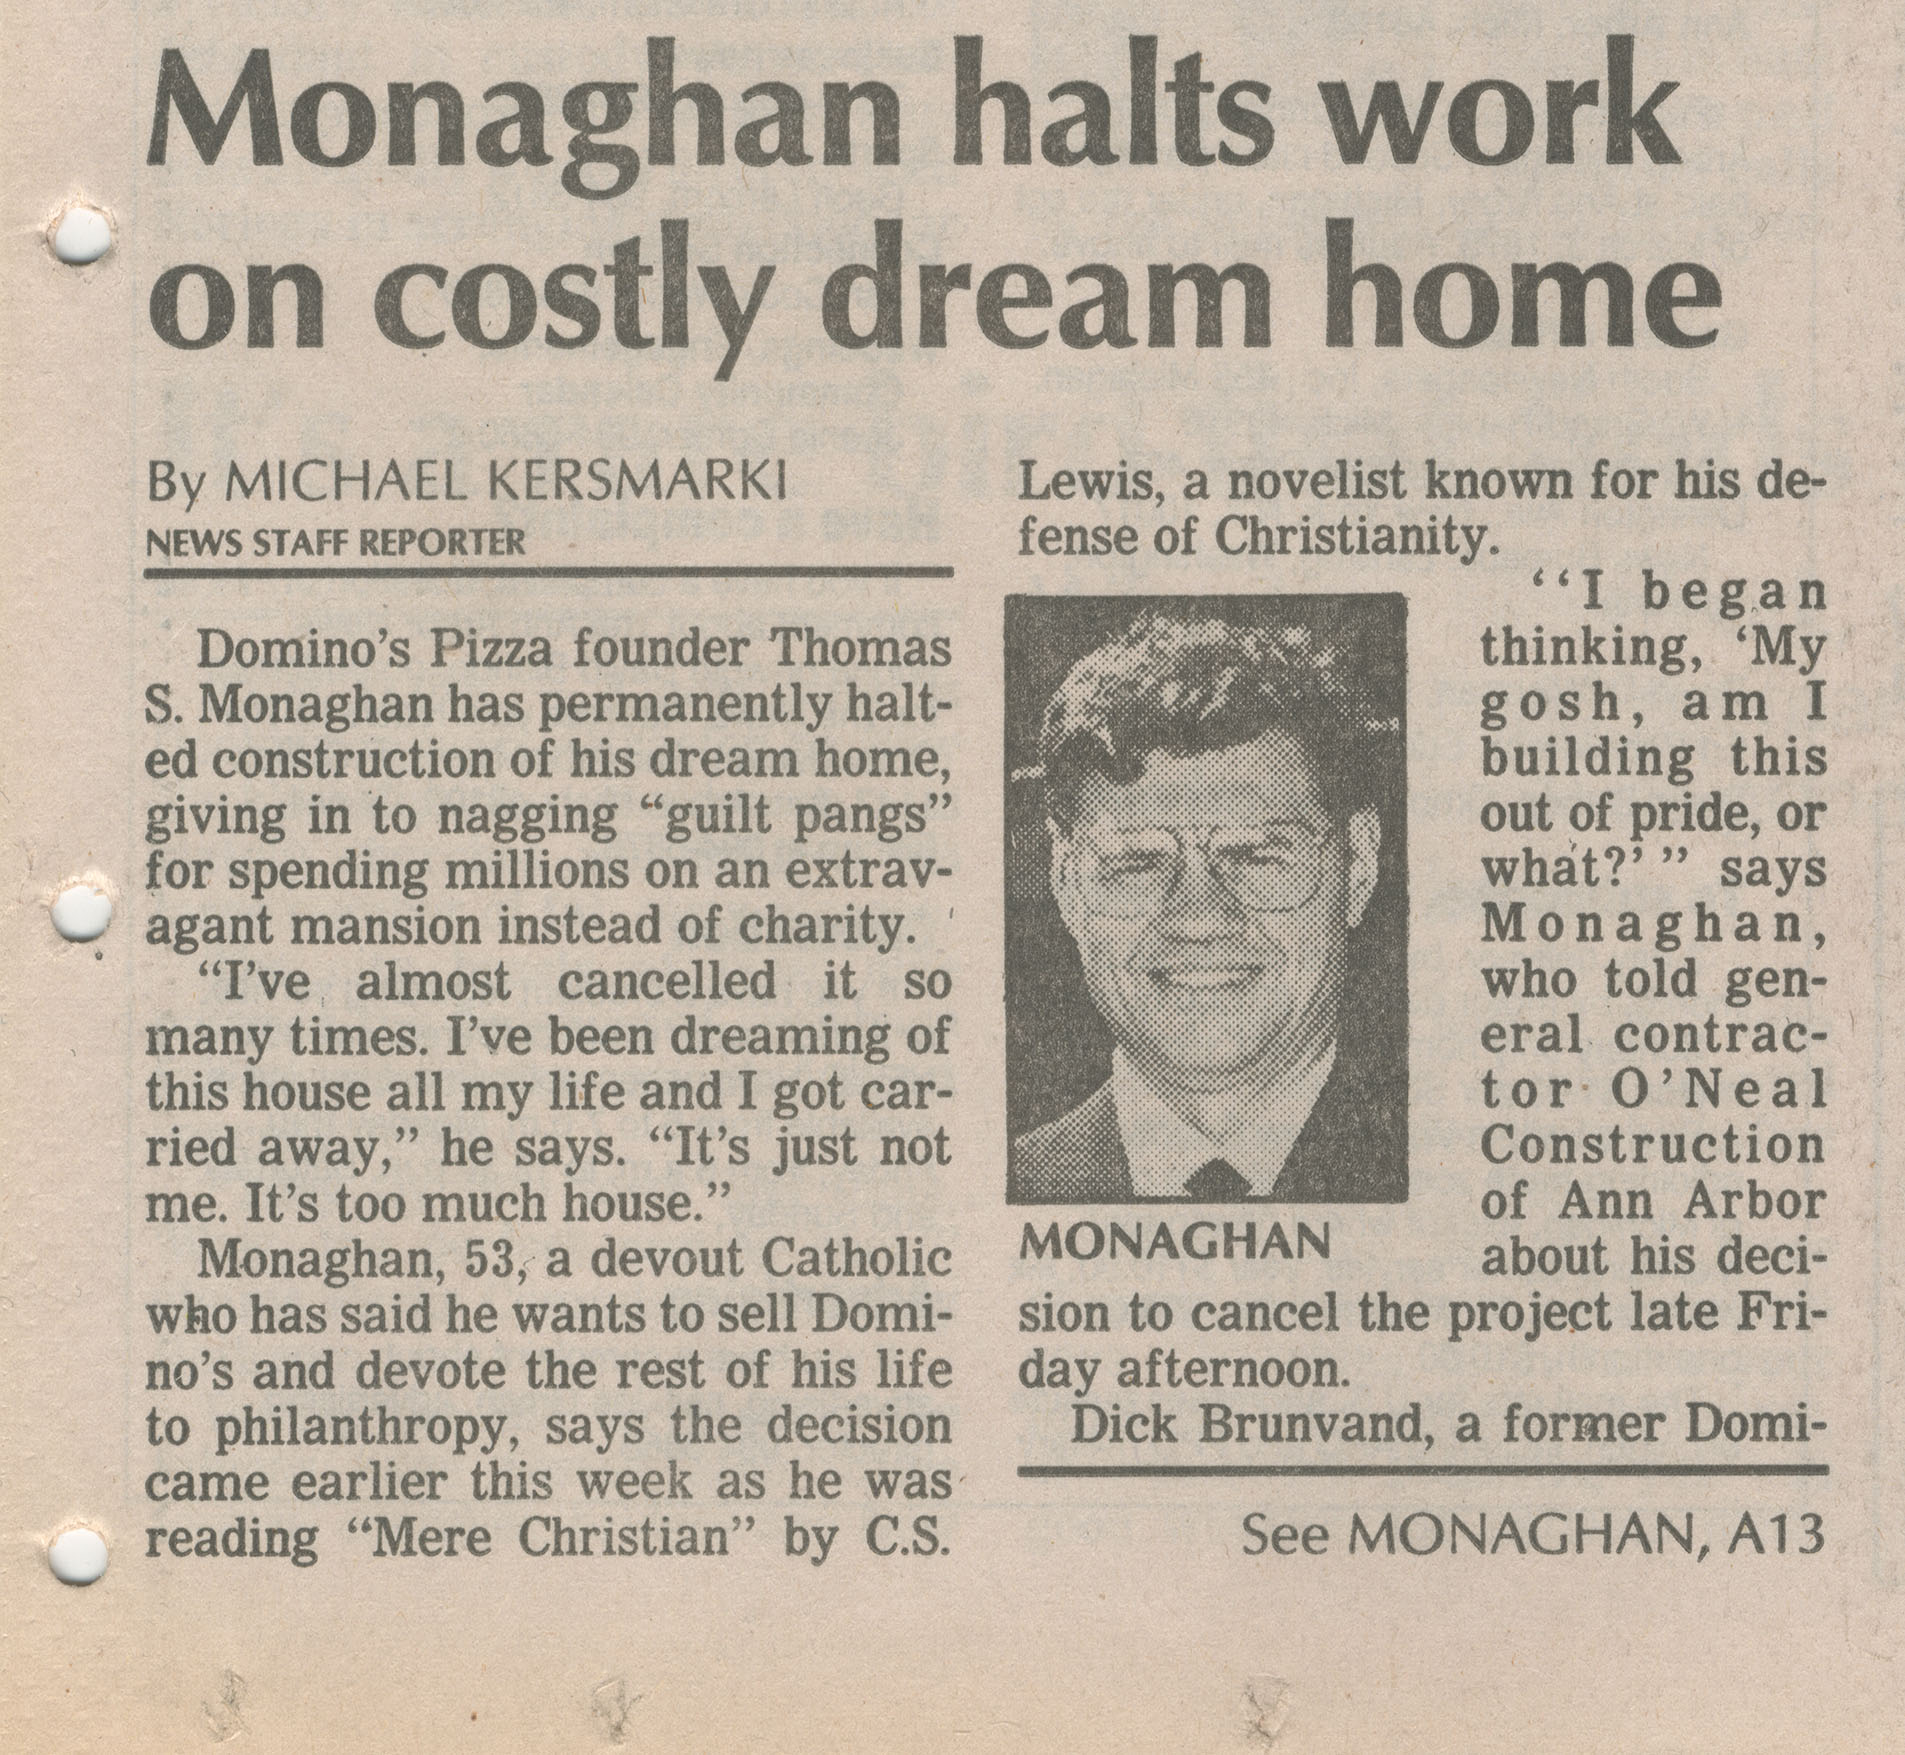 Monaghan halts work on costly dream home image